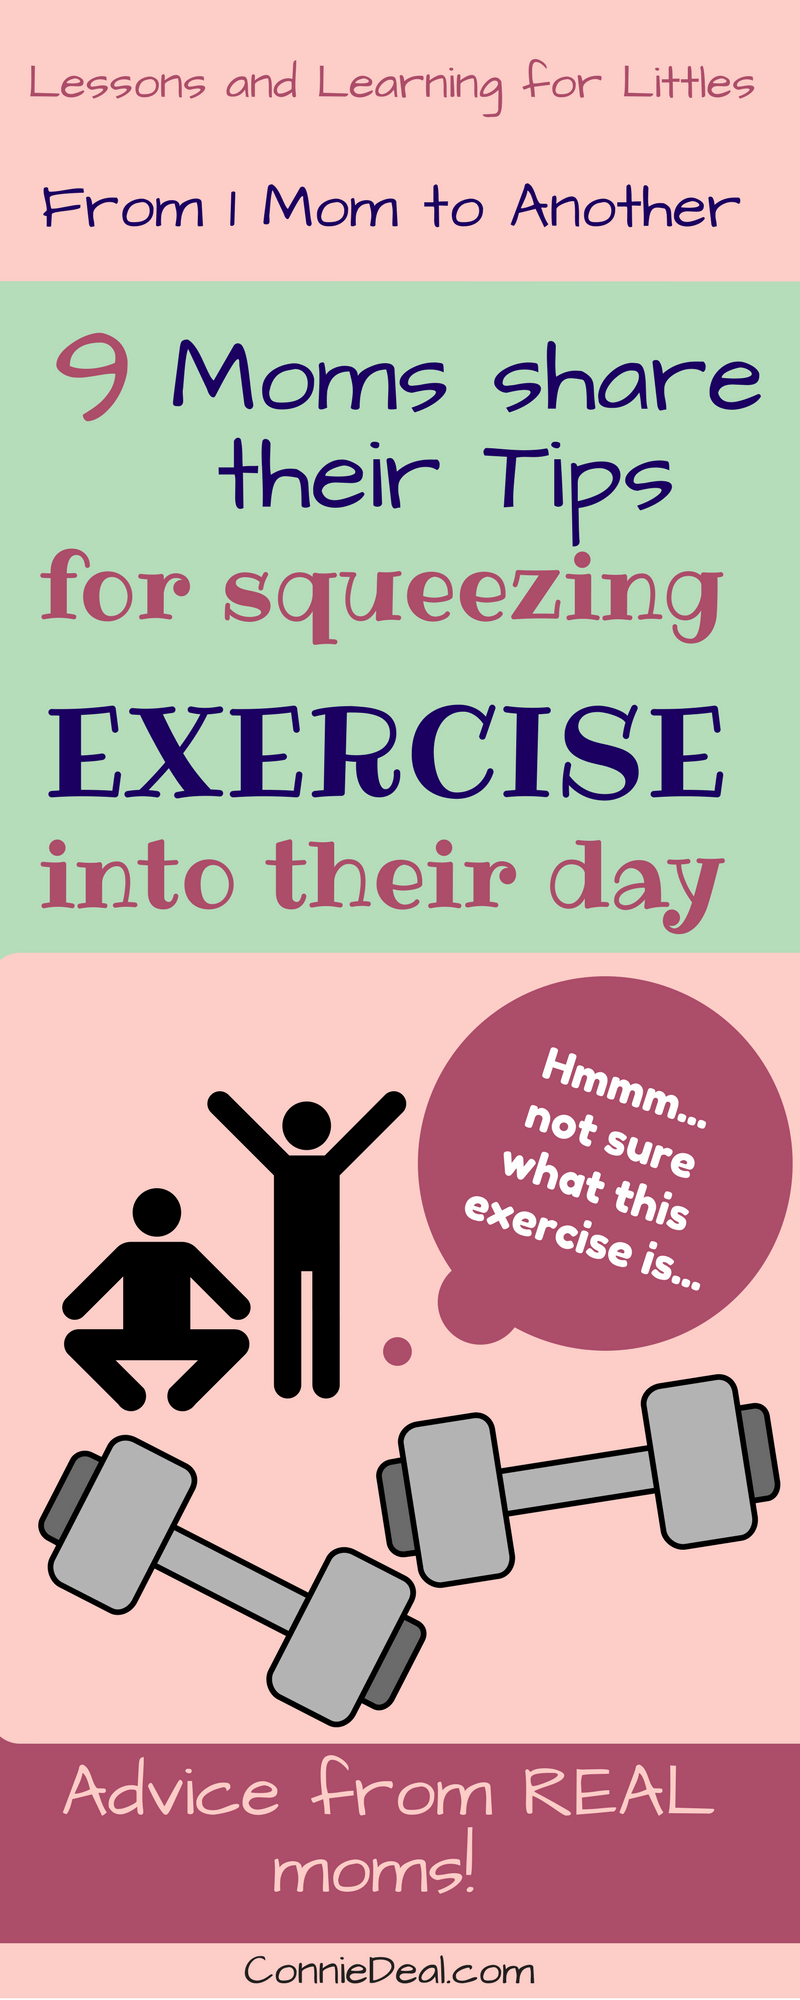 How do toddler moms fit exercise into their day? Find out how REAL toddler moms find and make time for exercise.